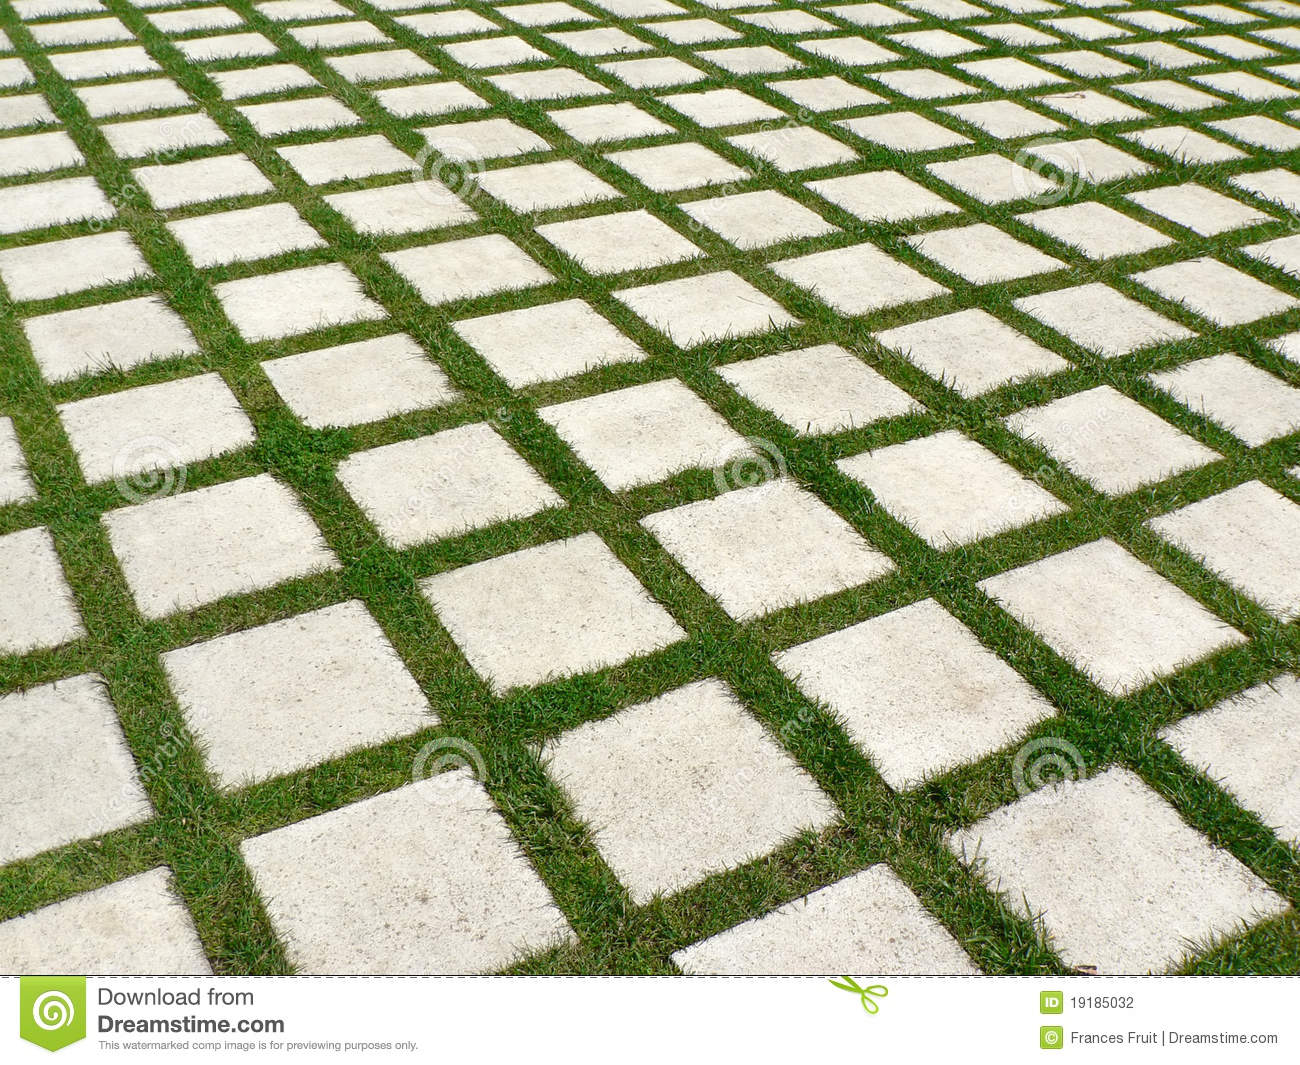 Grid of grass and paving stones stock photo image of for Green pavers